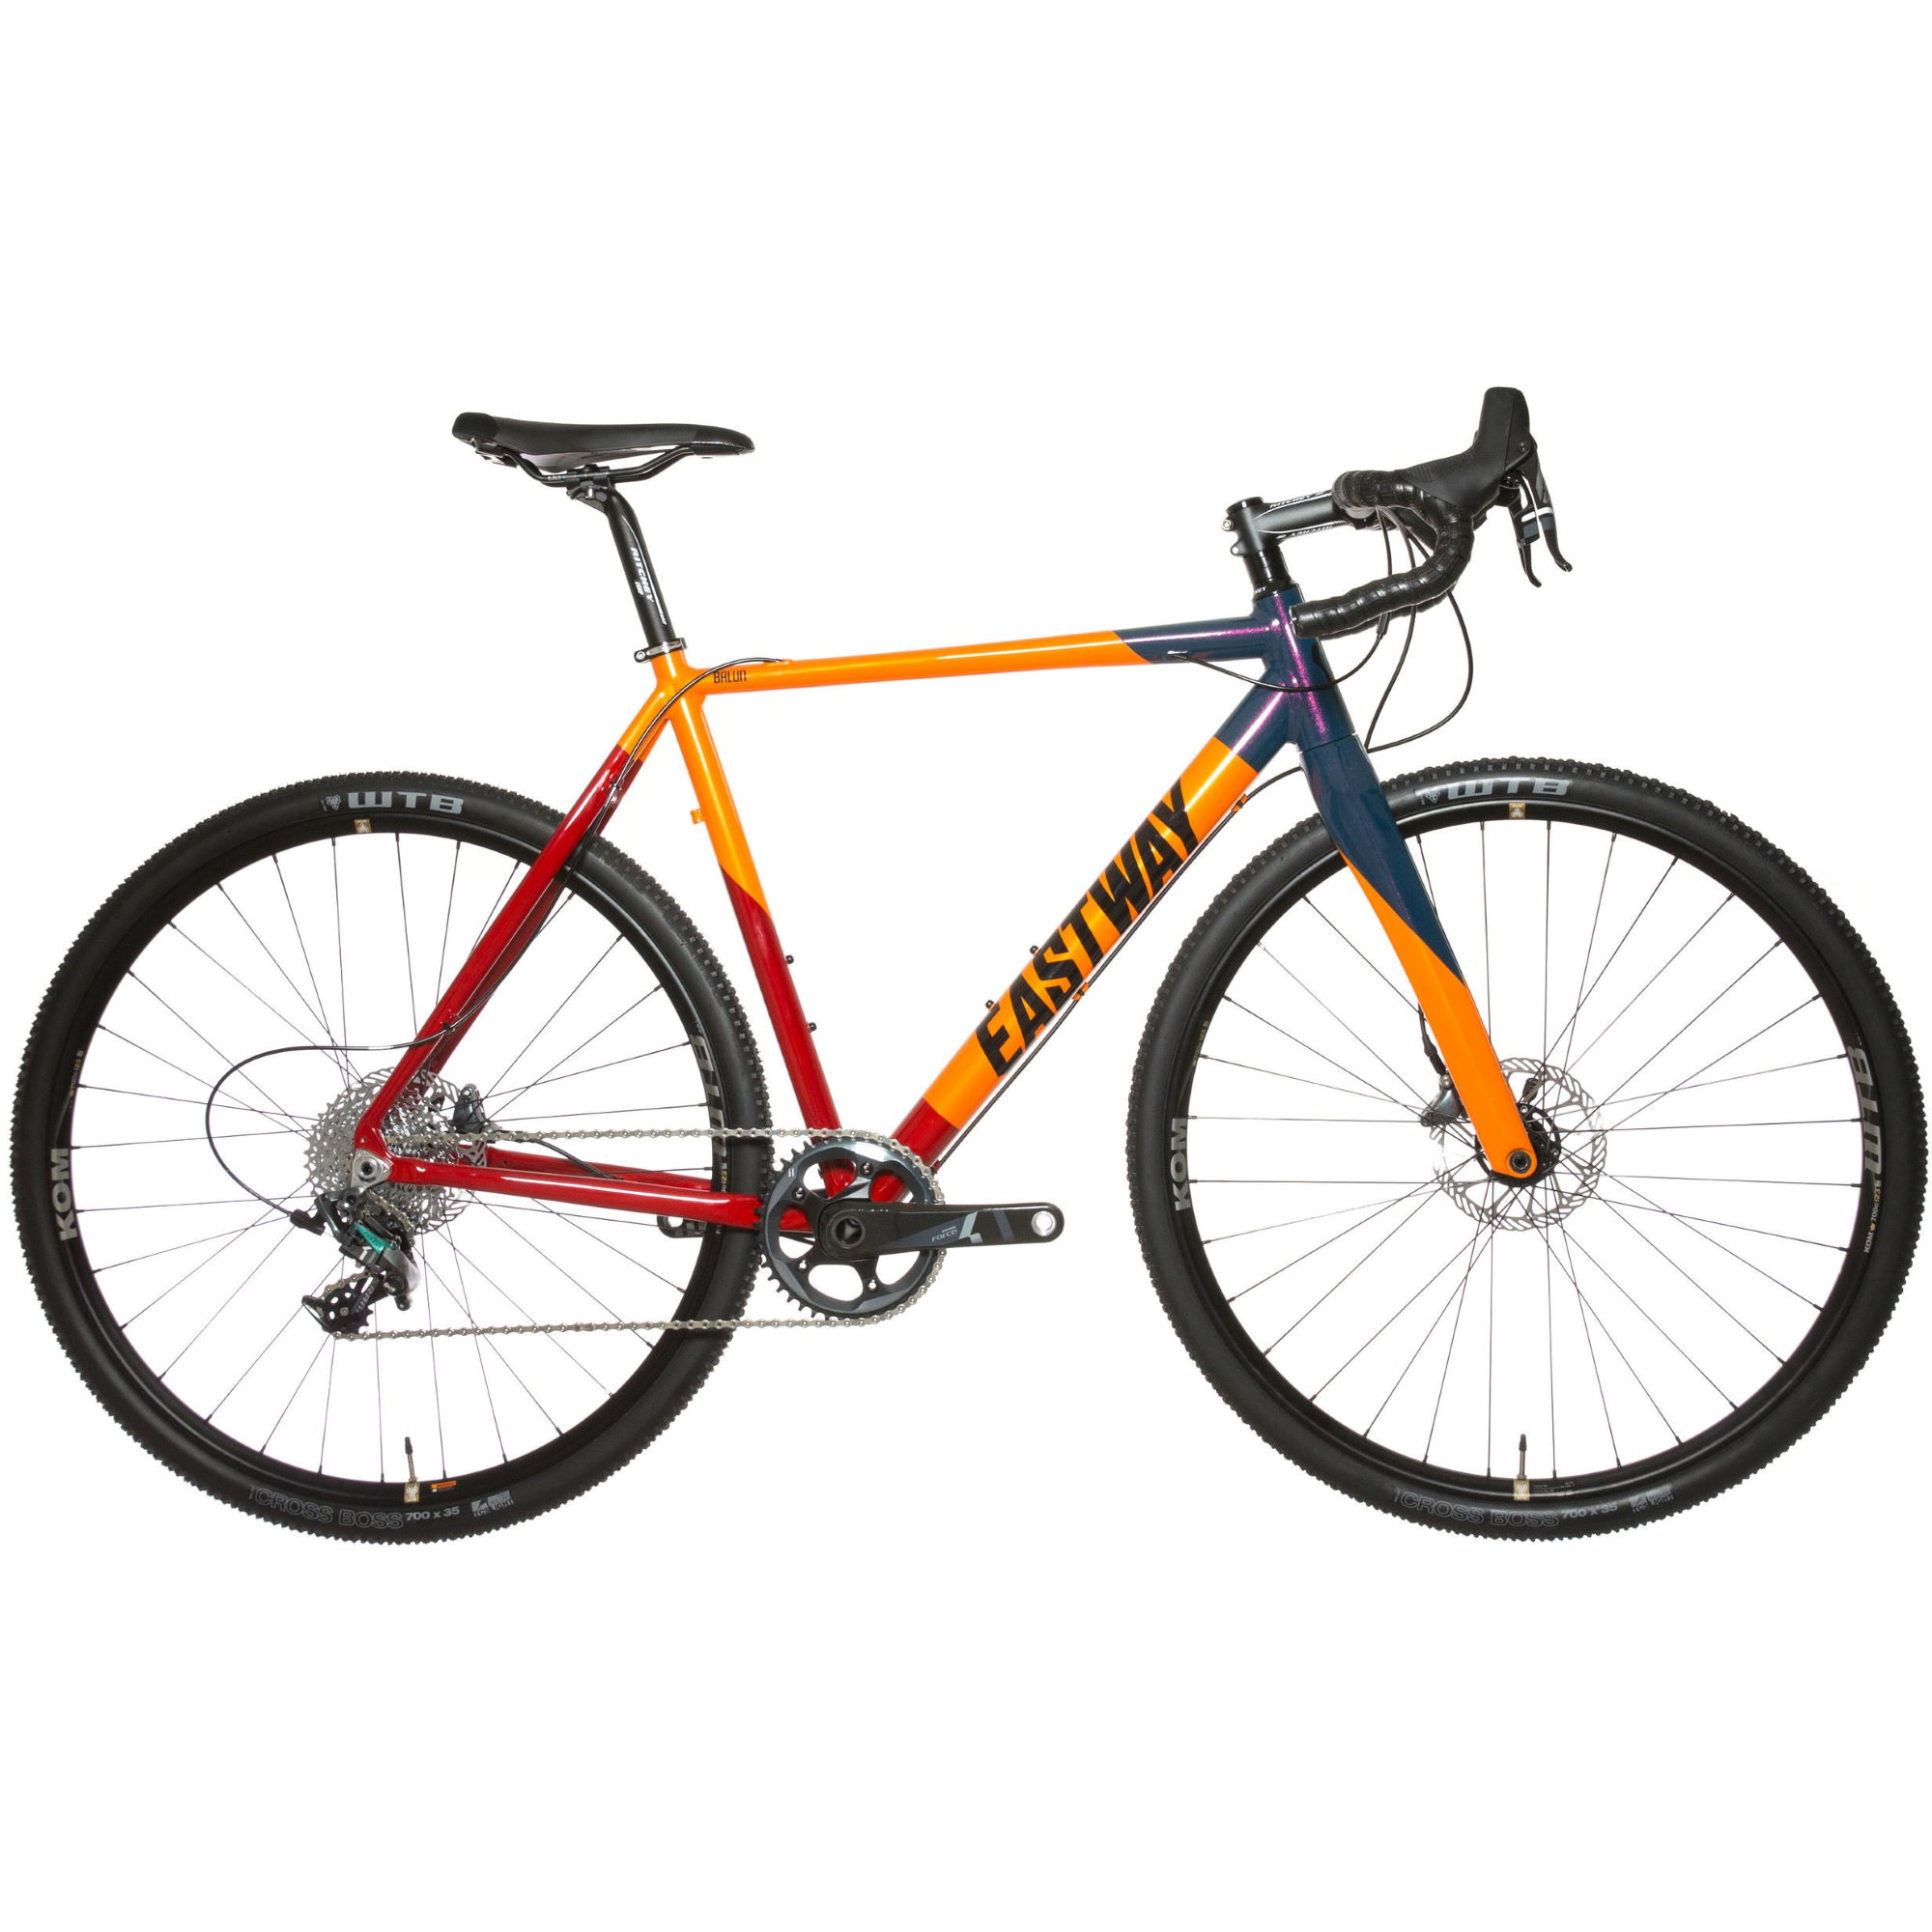 Wiggle Cycle To Work | Eastway Balun C1 (Force1) Cyclocross Bike ...